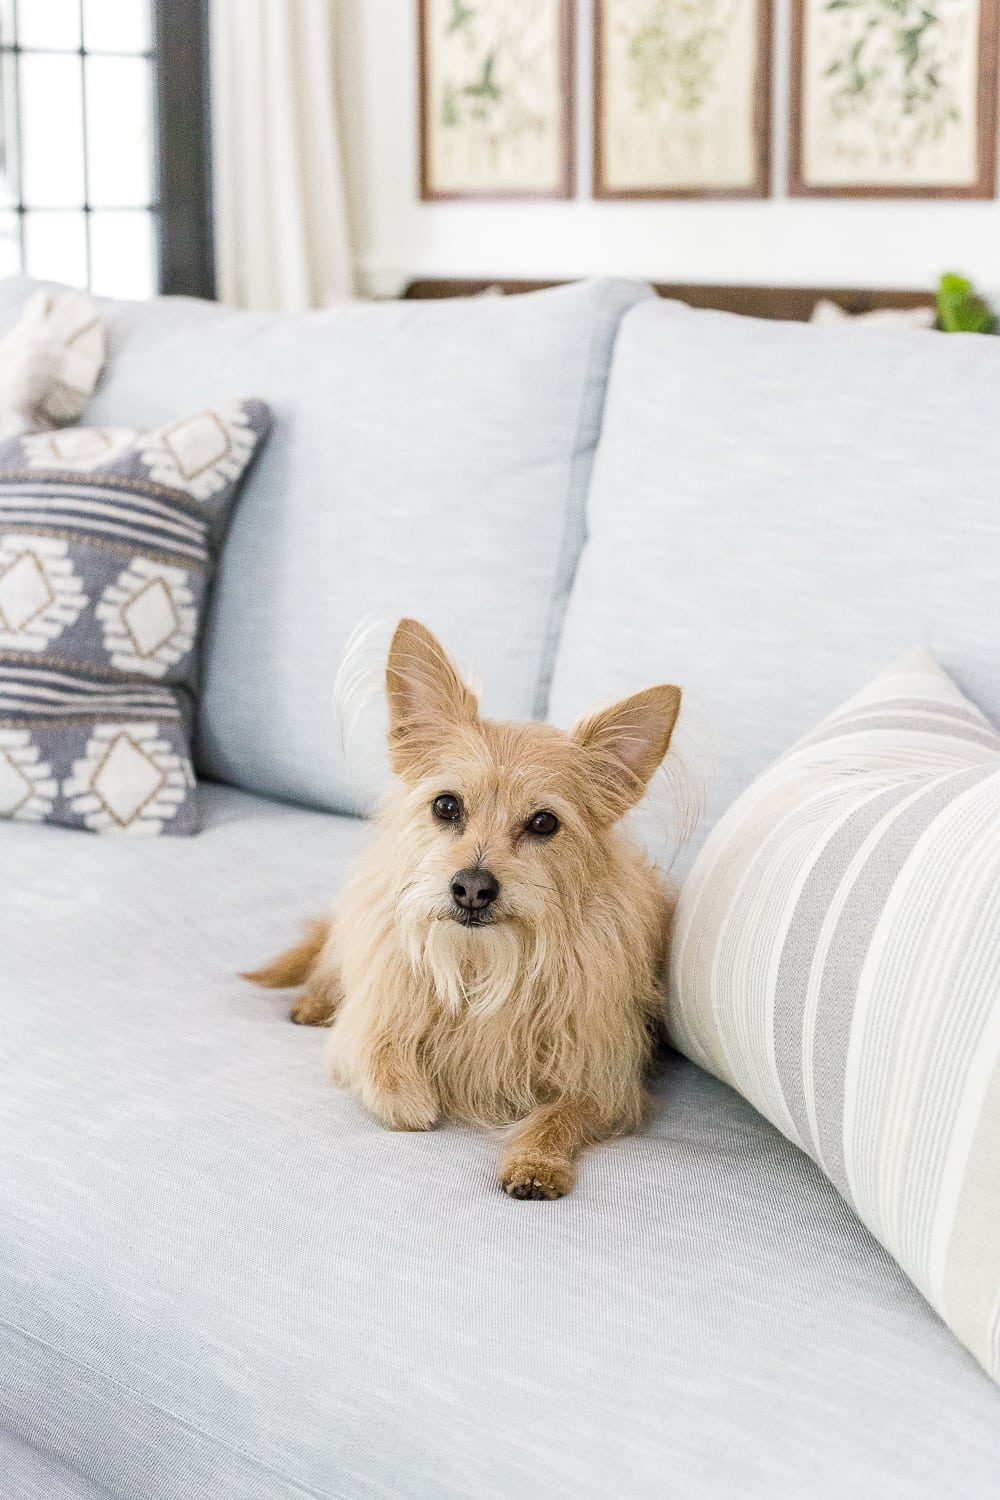 How to keep an eye on your pets while you're away via smart home